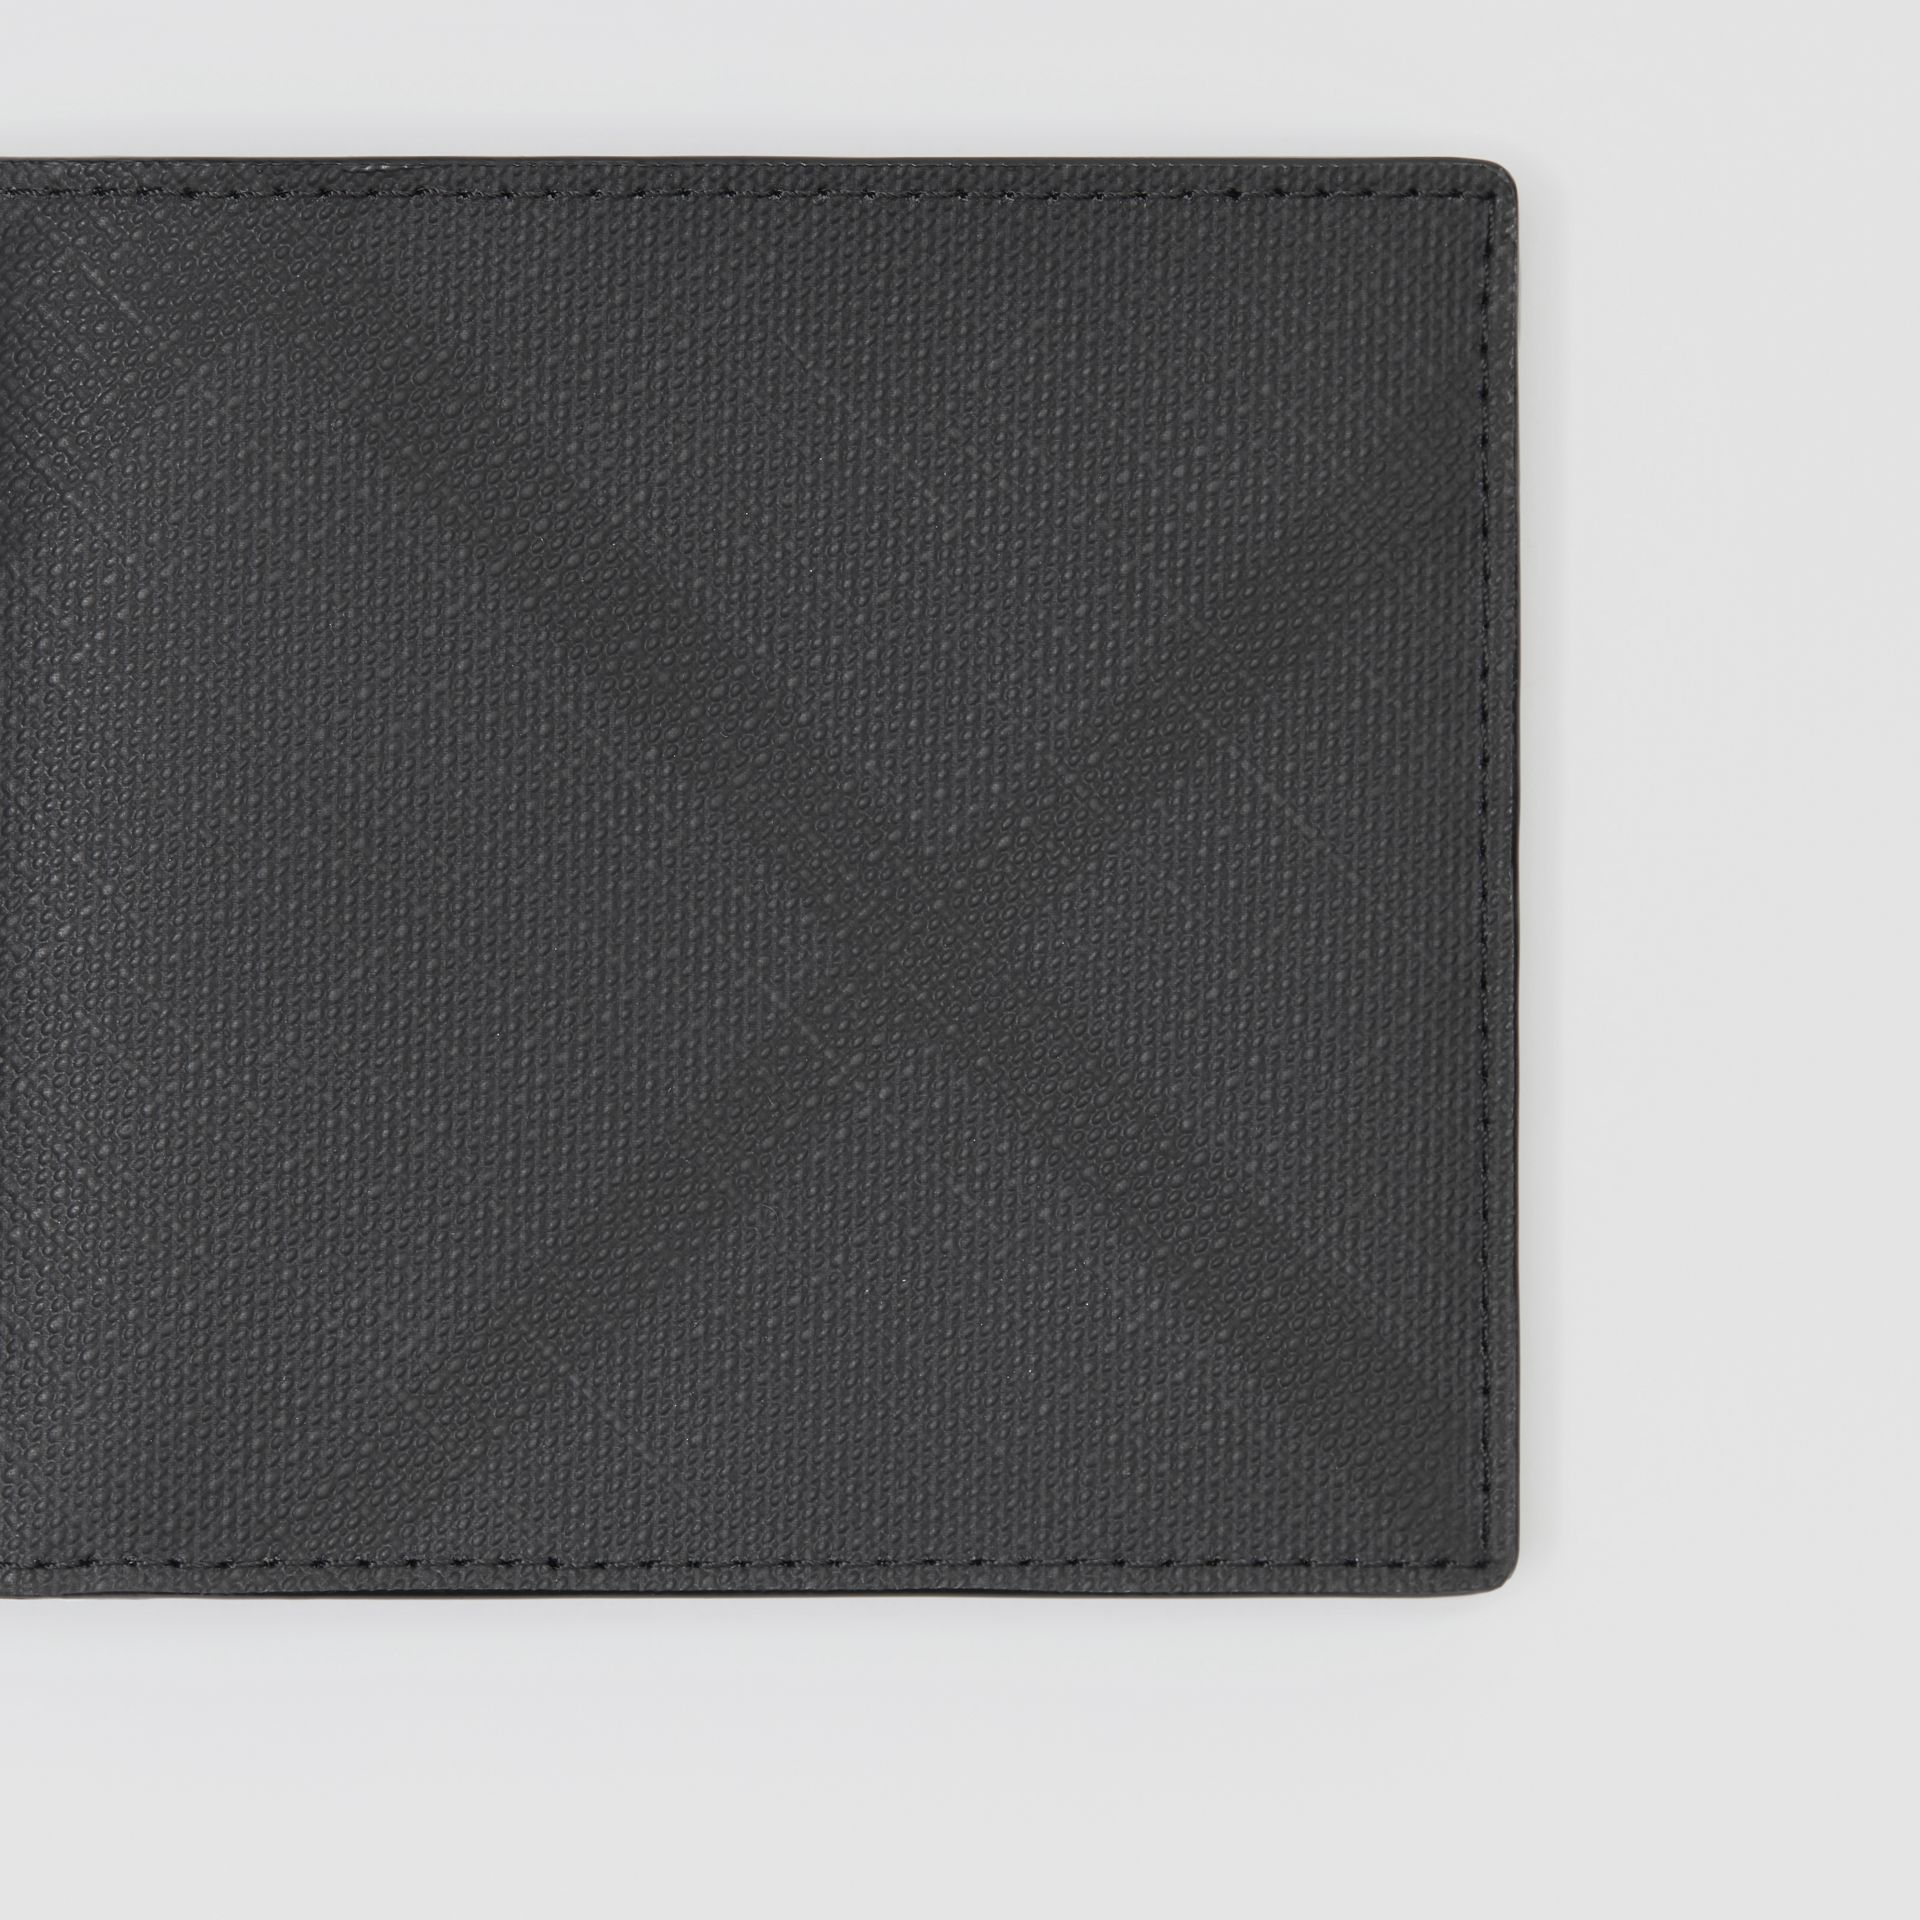 London Check and Leather International Bifold Wallet in Dark Charcoal - Men | Burberry Hong Kong - gallery image 1